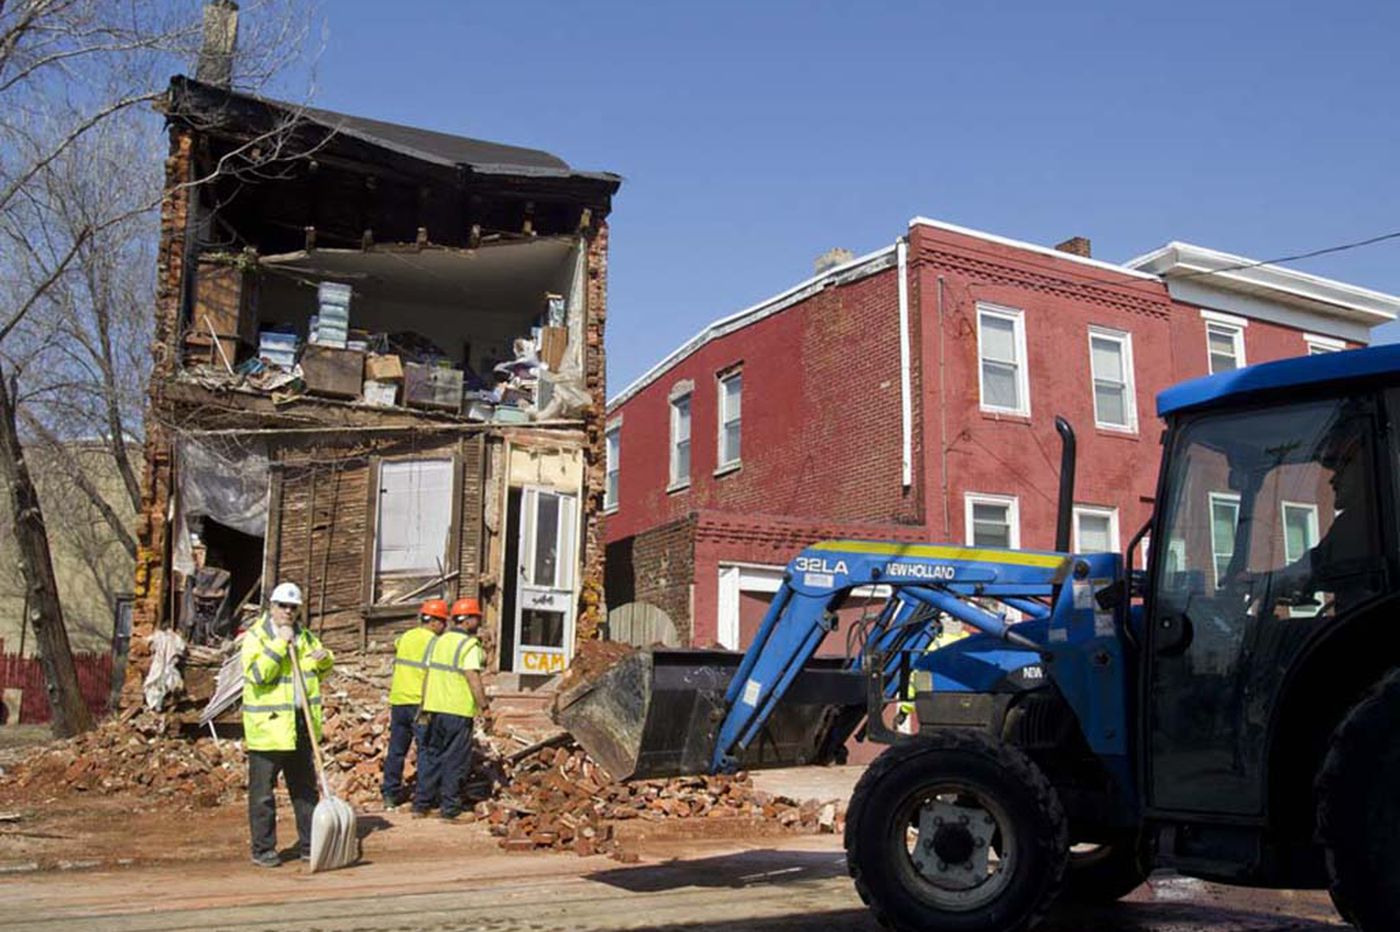 Family wonders who to blame in house collapse